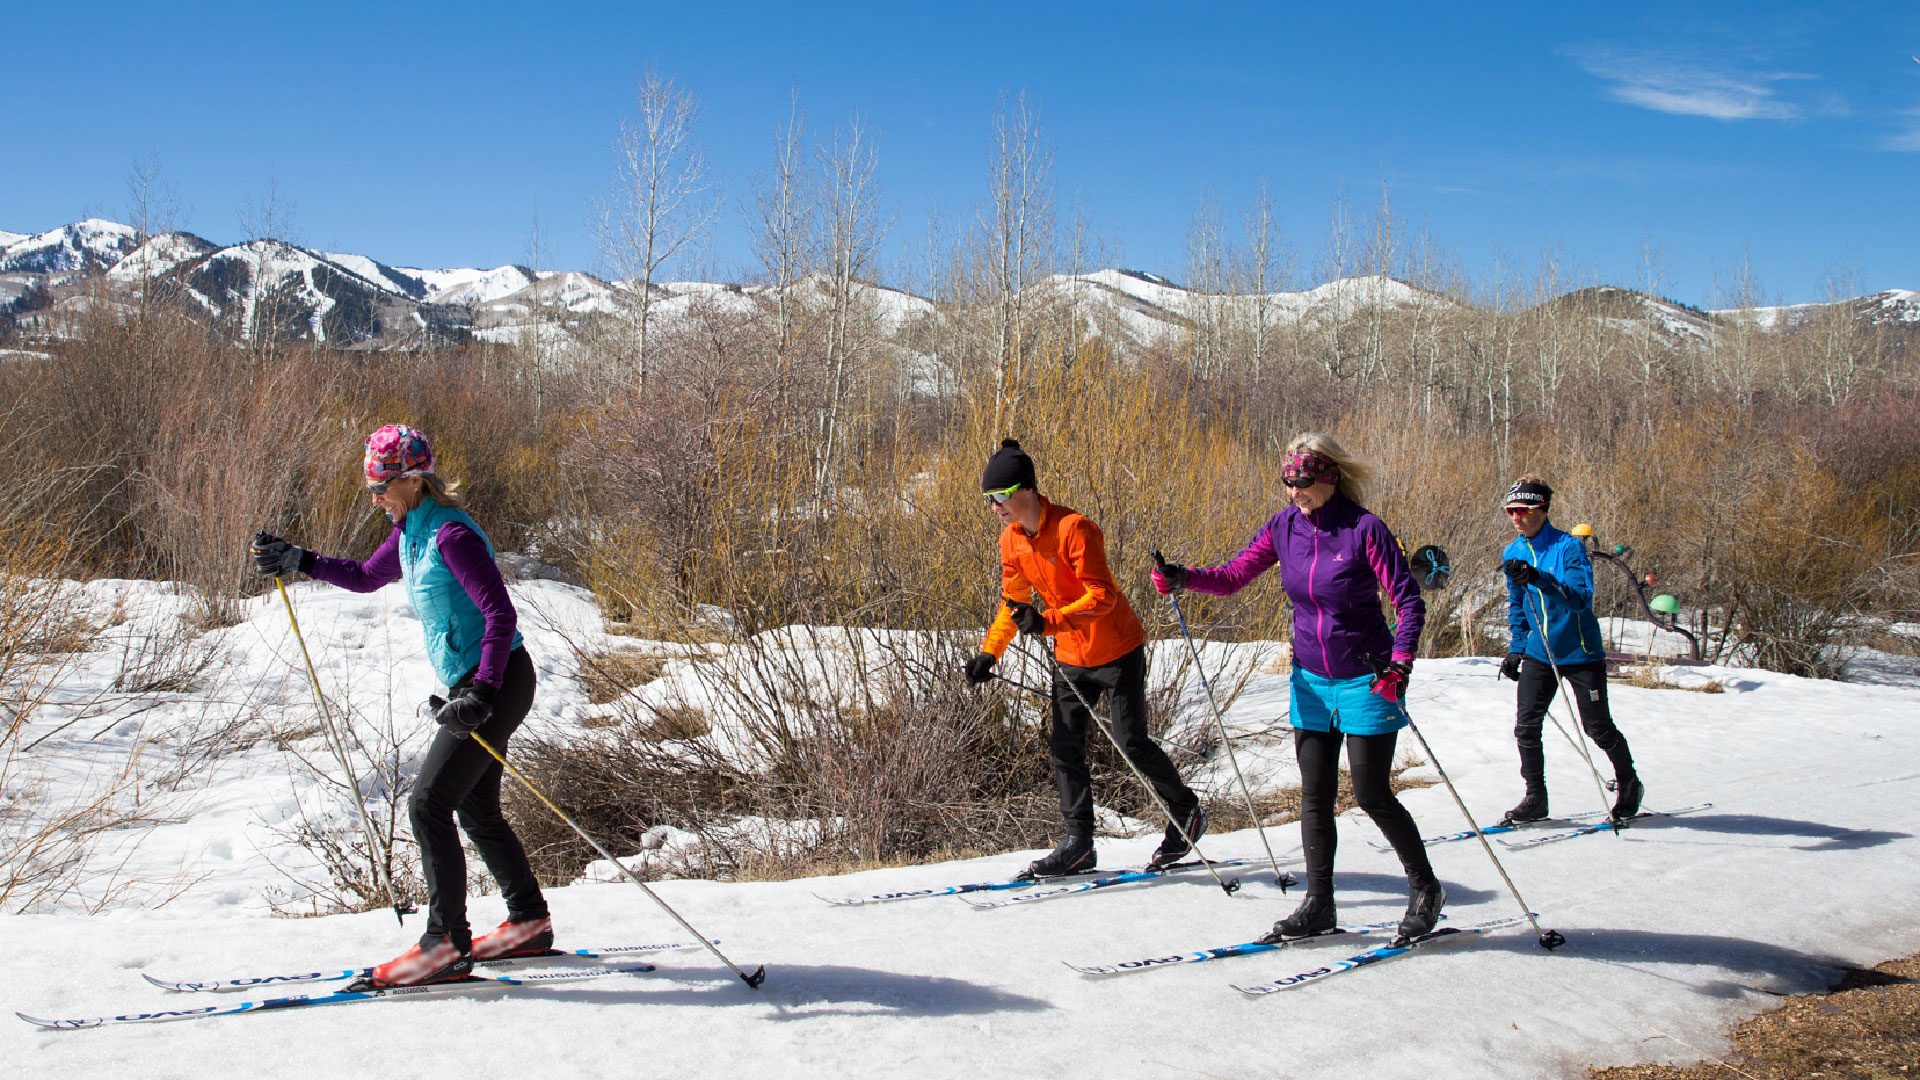 Guided Local Cross Country Skiing Tour from White Pine Touring in Park City, UT.